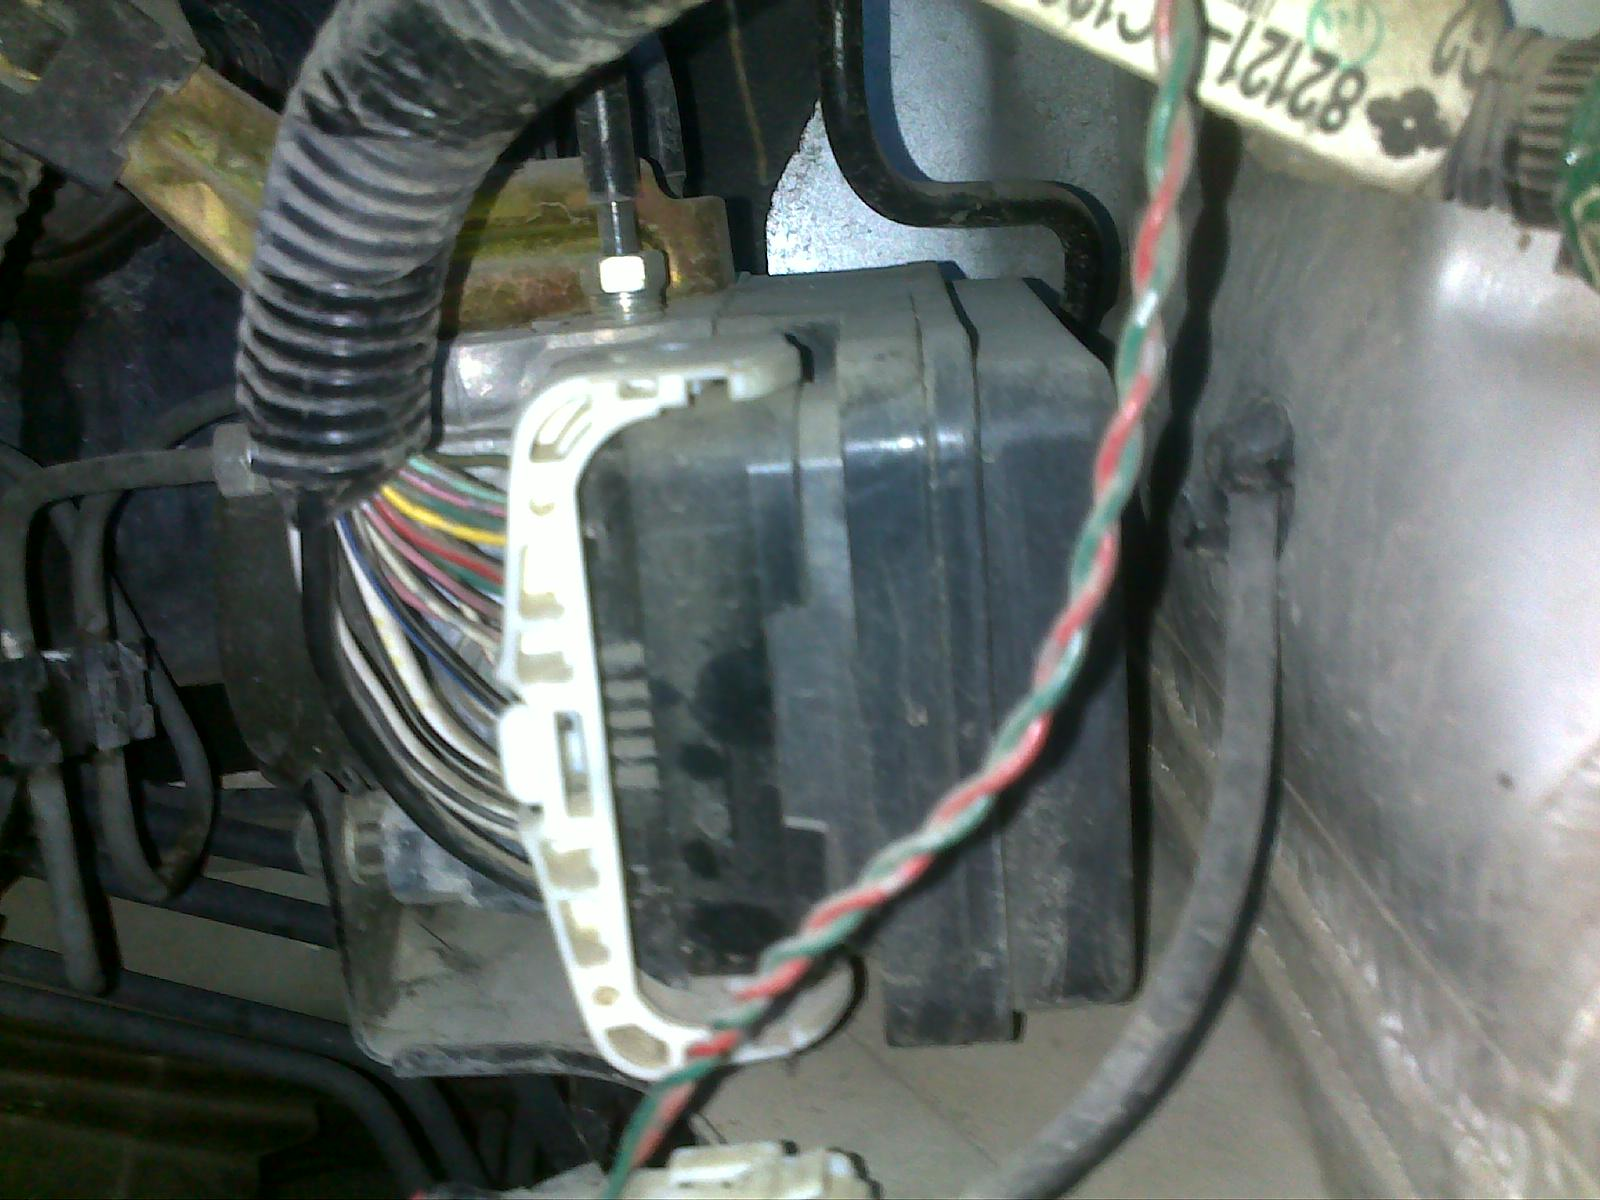 On My 2006 Scion Xa  After I Hooked Up The Battery Nothing